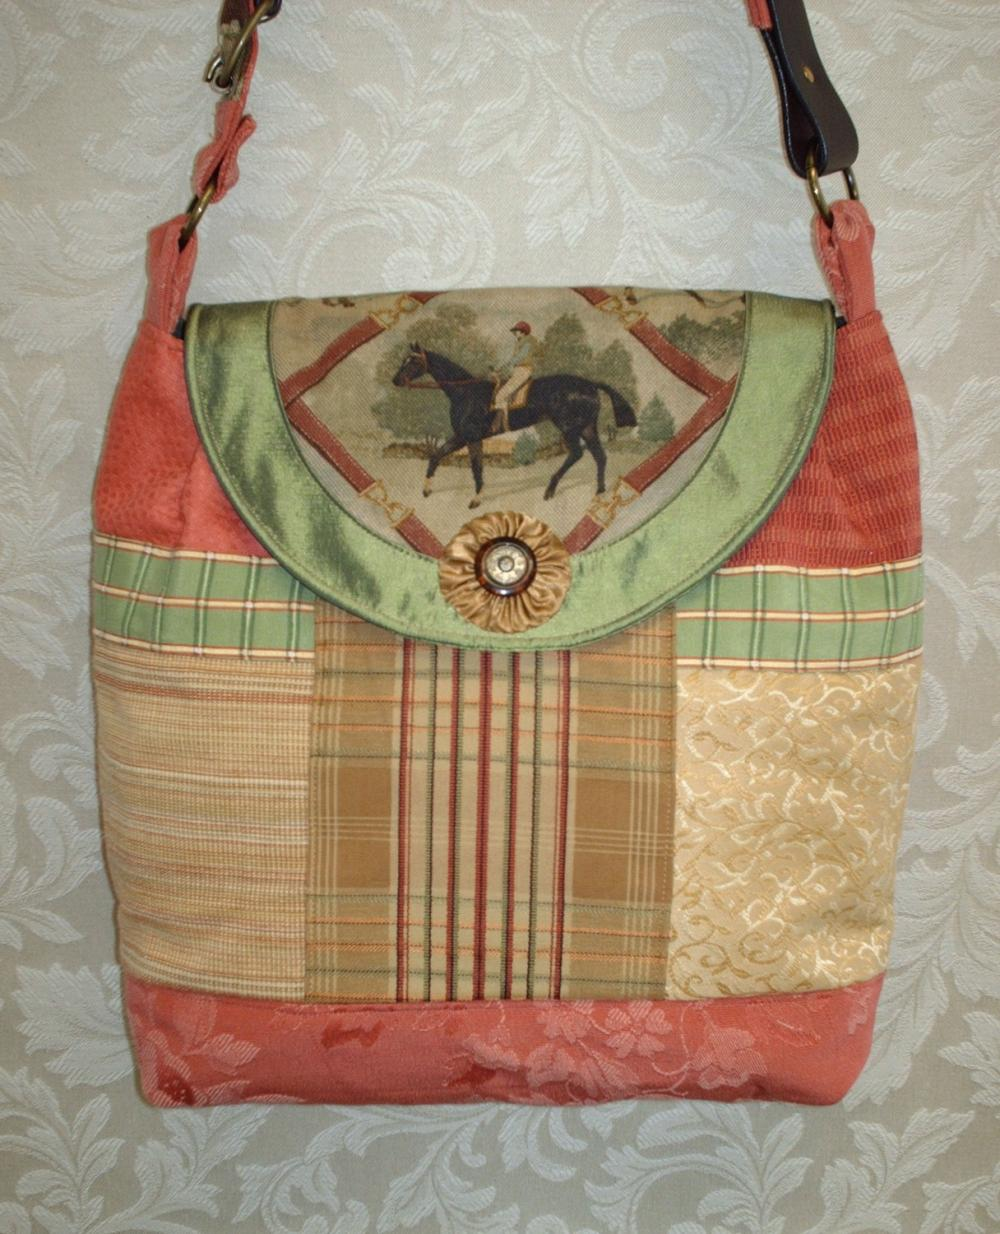 Equestrian Satchel Style Handbag / Coral Gold And Brown With Quilting